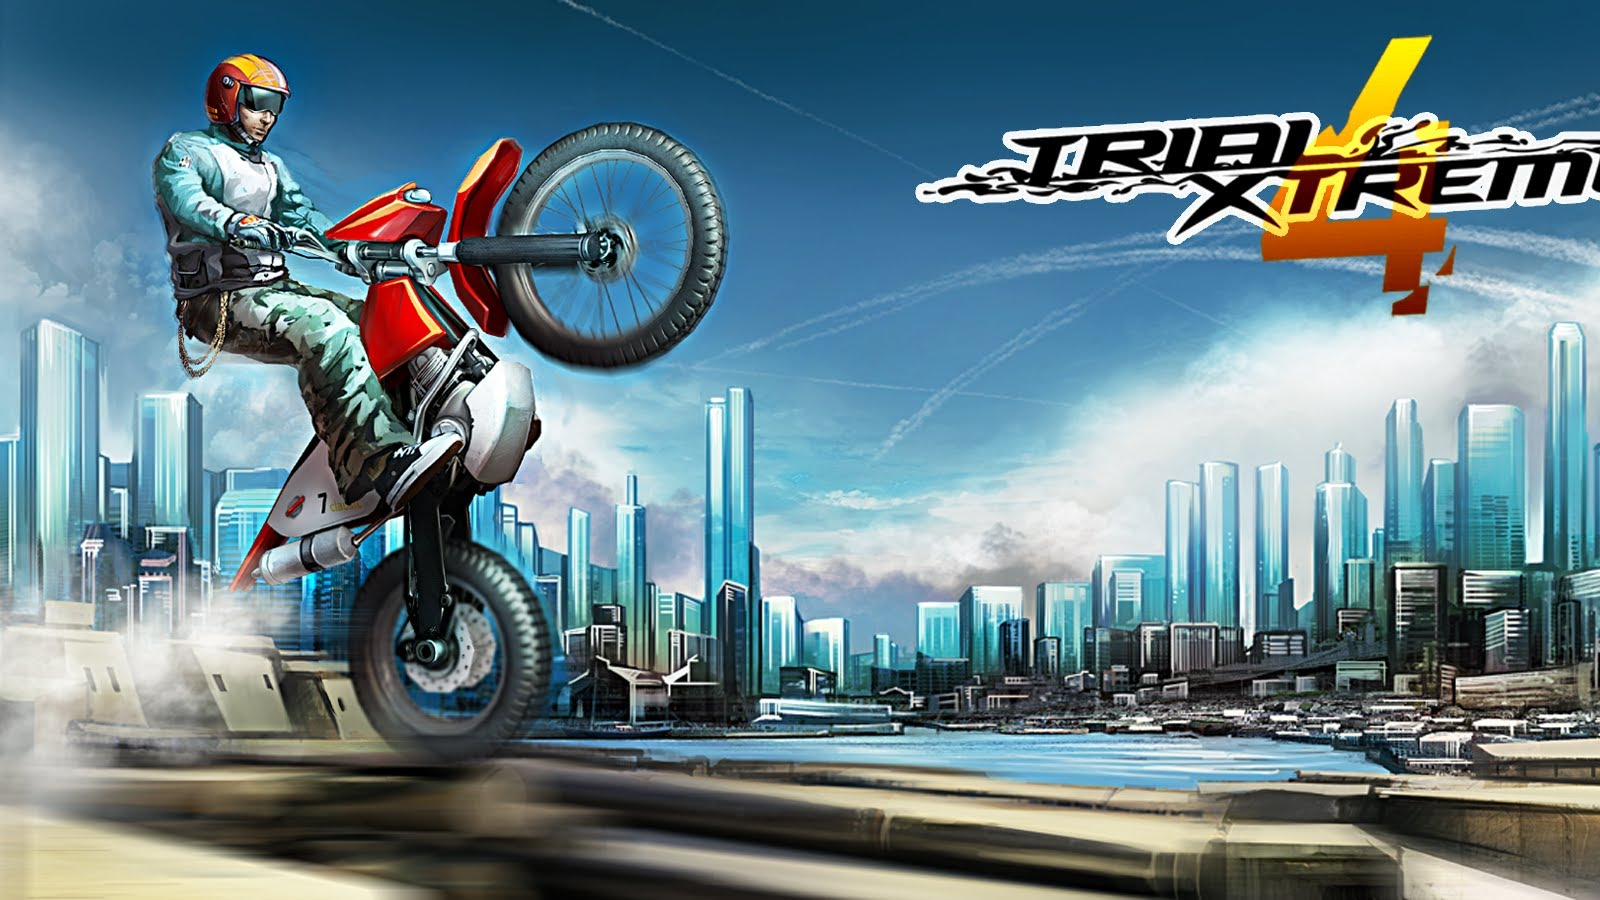 trial xtreme 3 apk free download for android